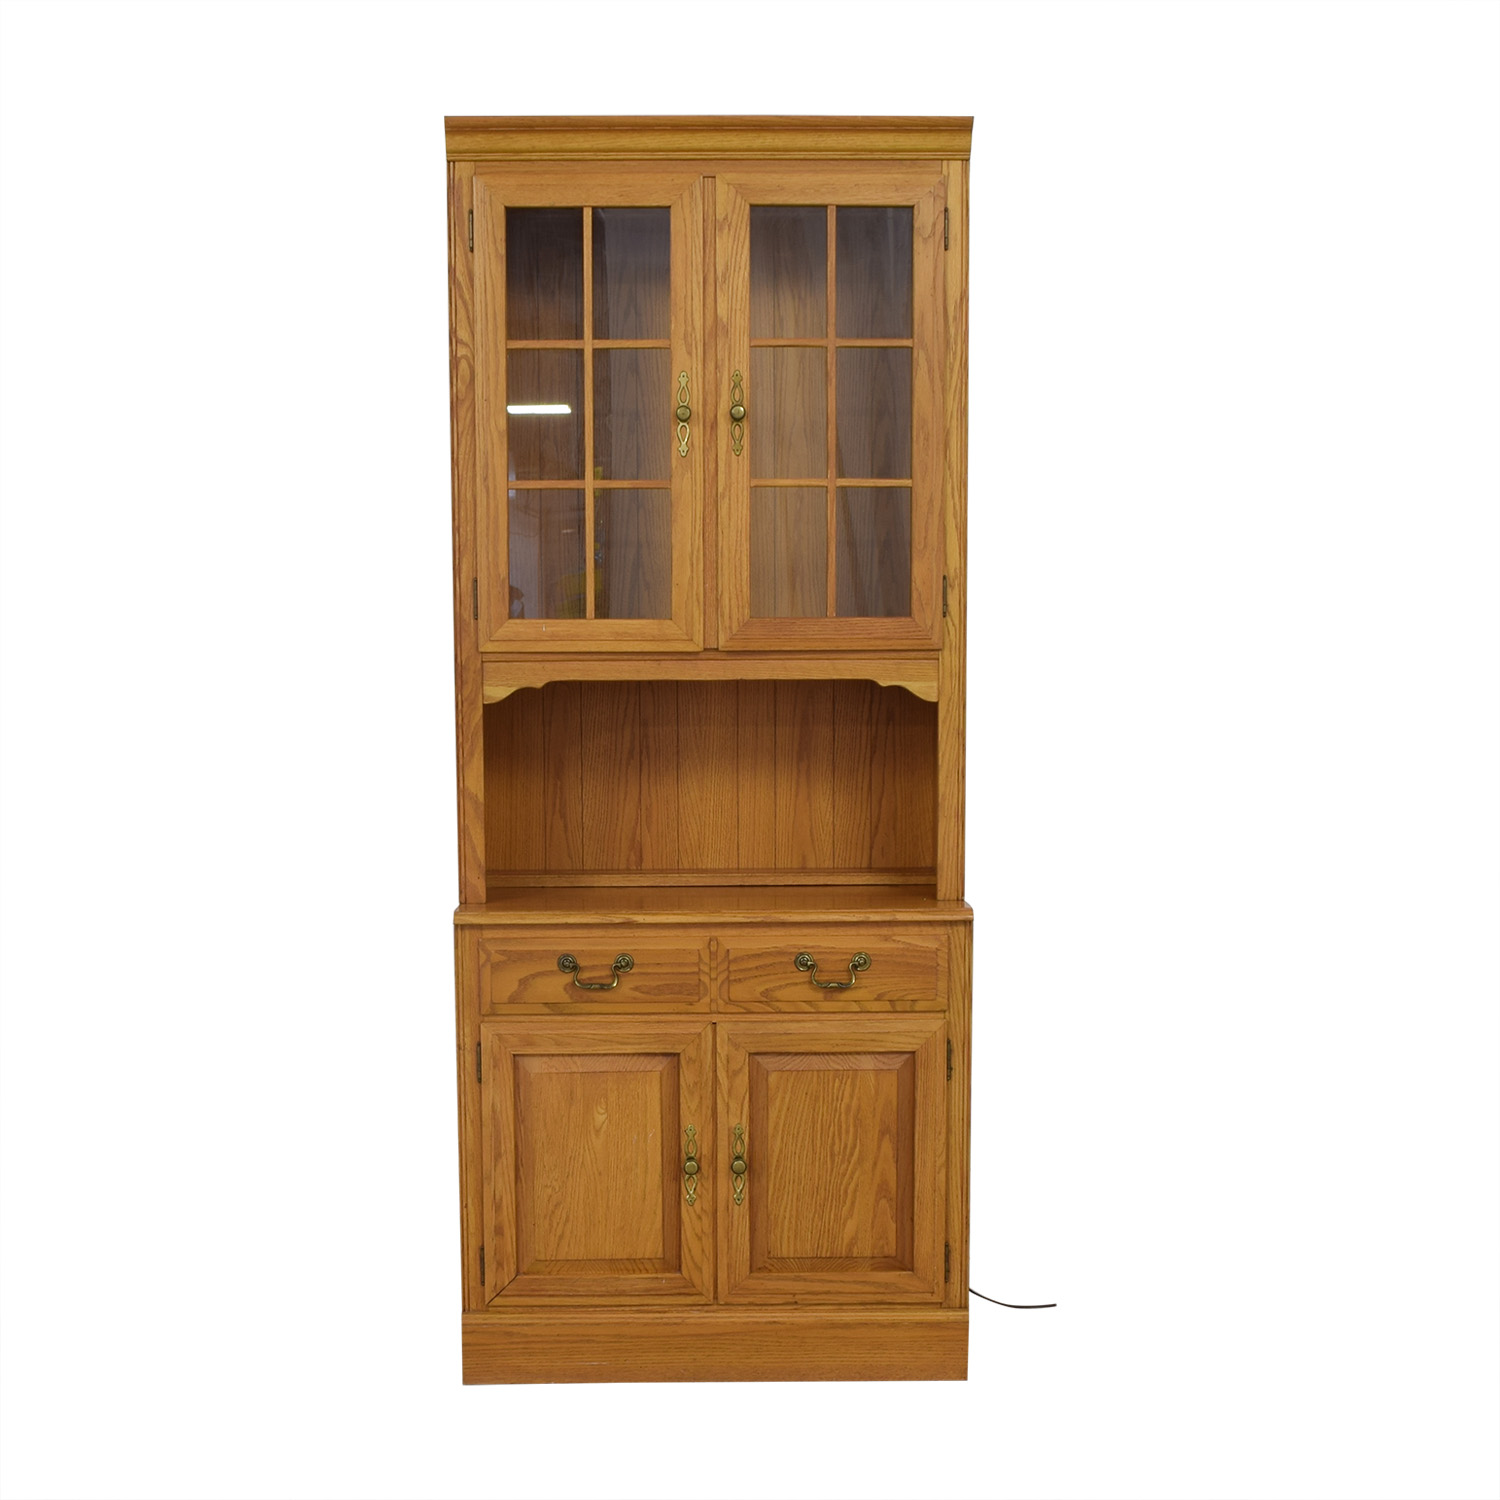 Ethan Allen Canterbury Oak Chippendale Display Case and Cabinet discount